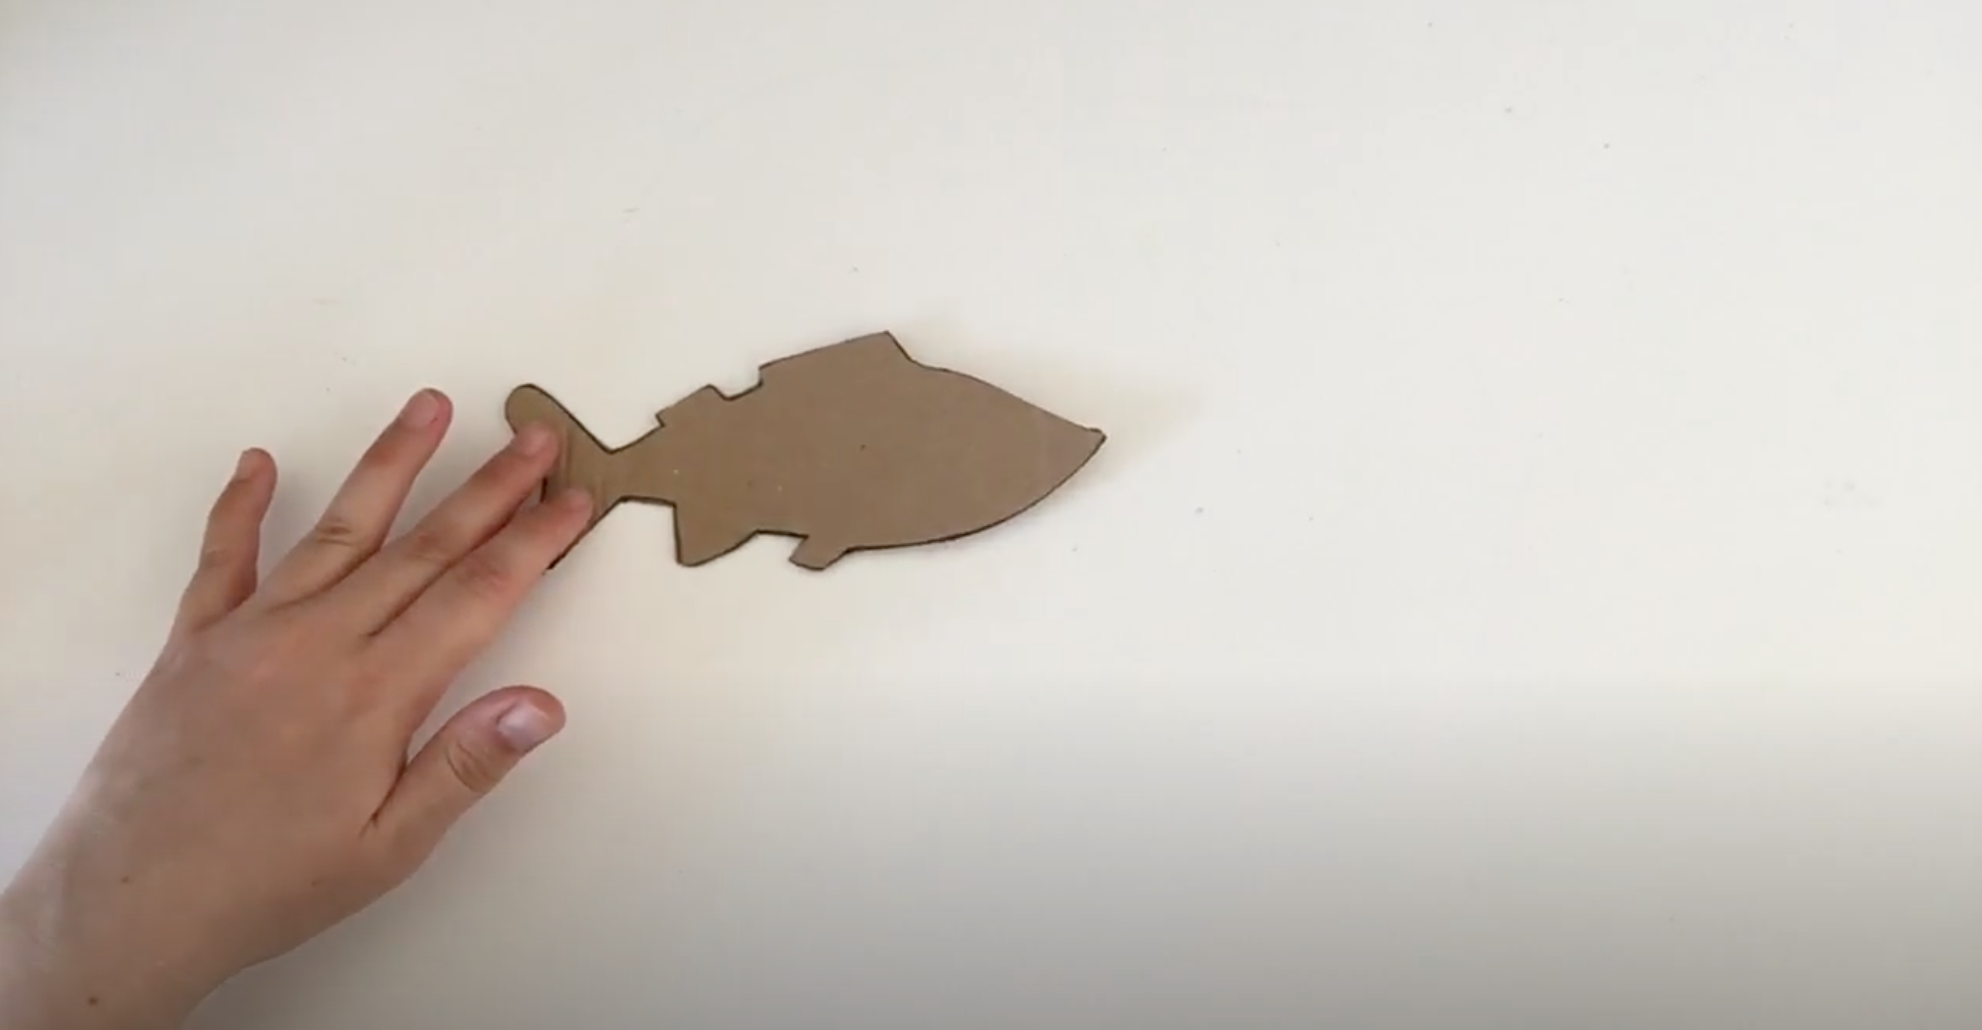 Image shows fish cut out of cardboard